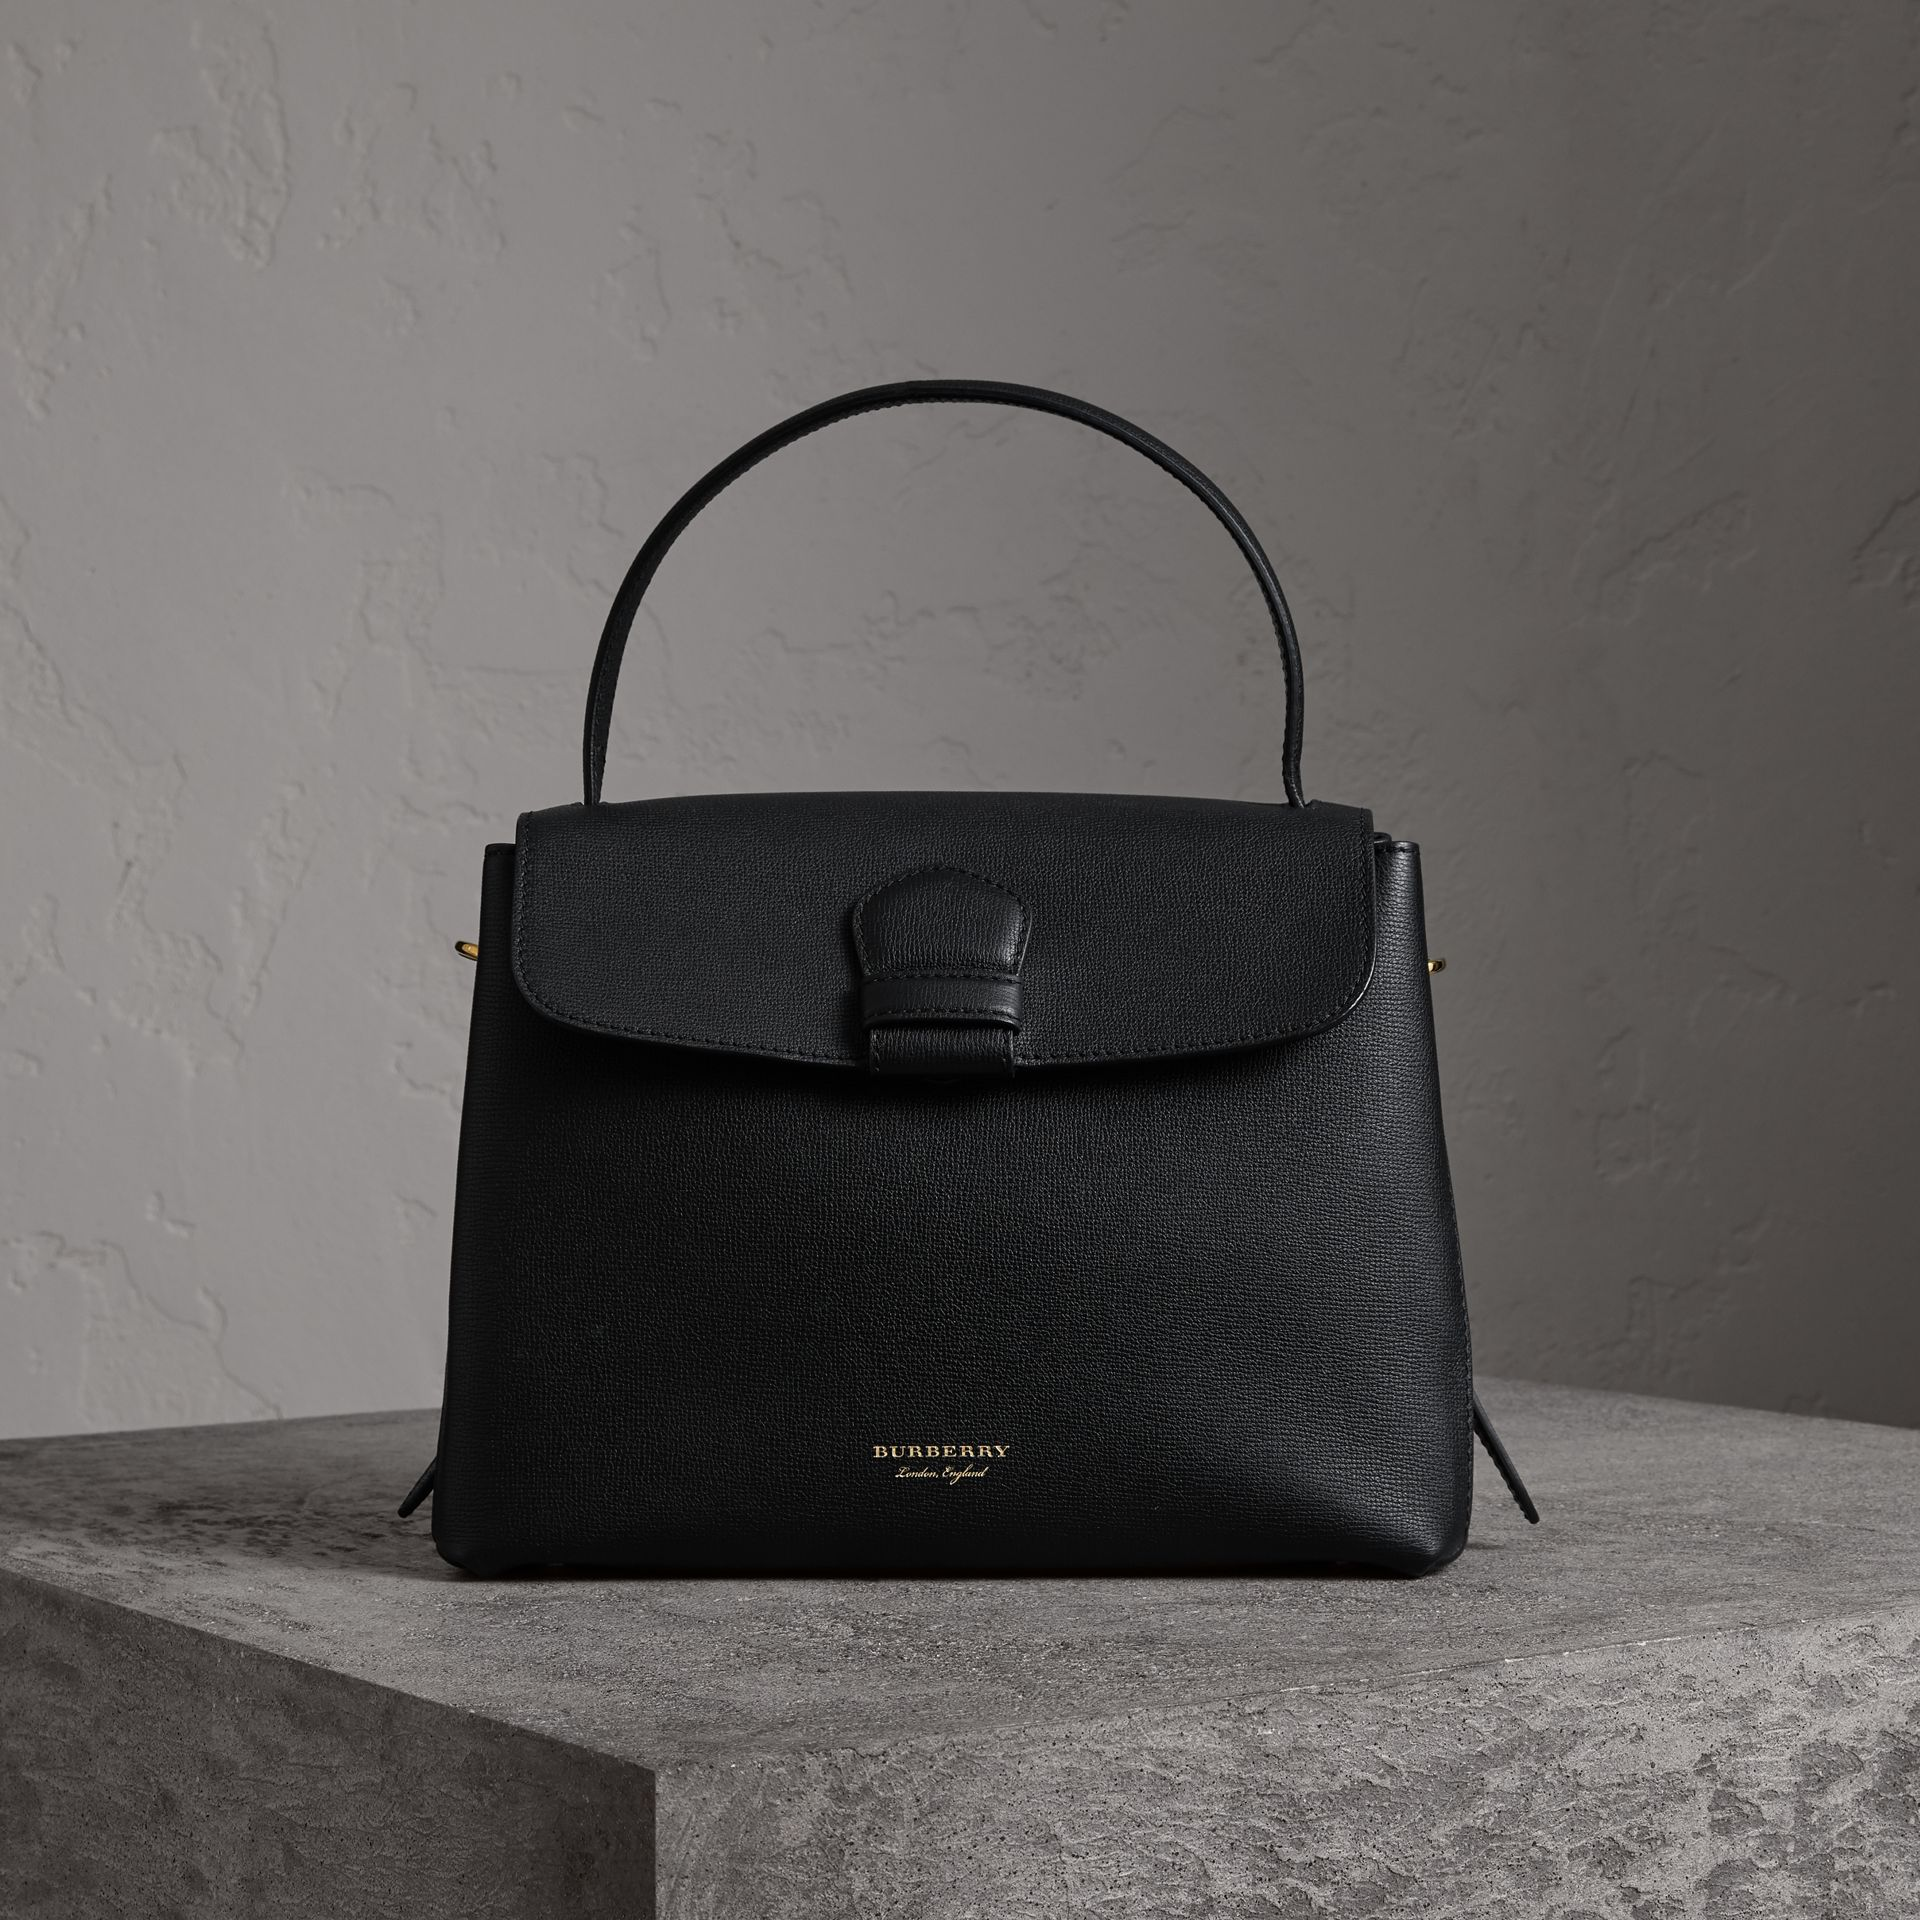 Medium Grainy Leather and House Check Tote Bag in Black - Women | Burberry United Kingdom - gallery image 6